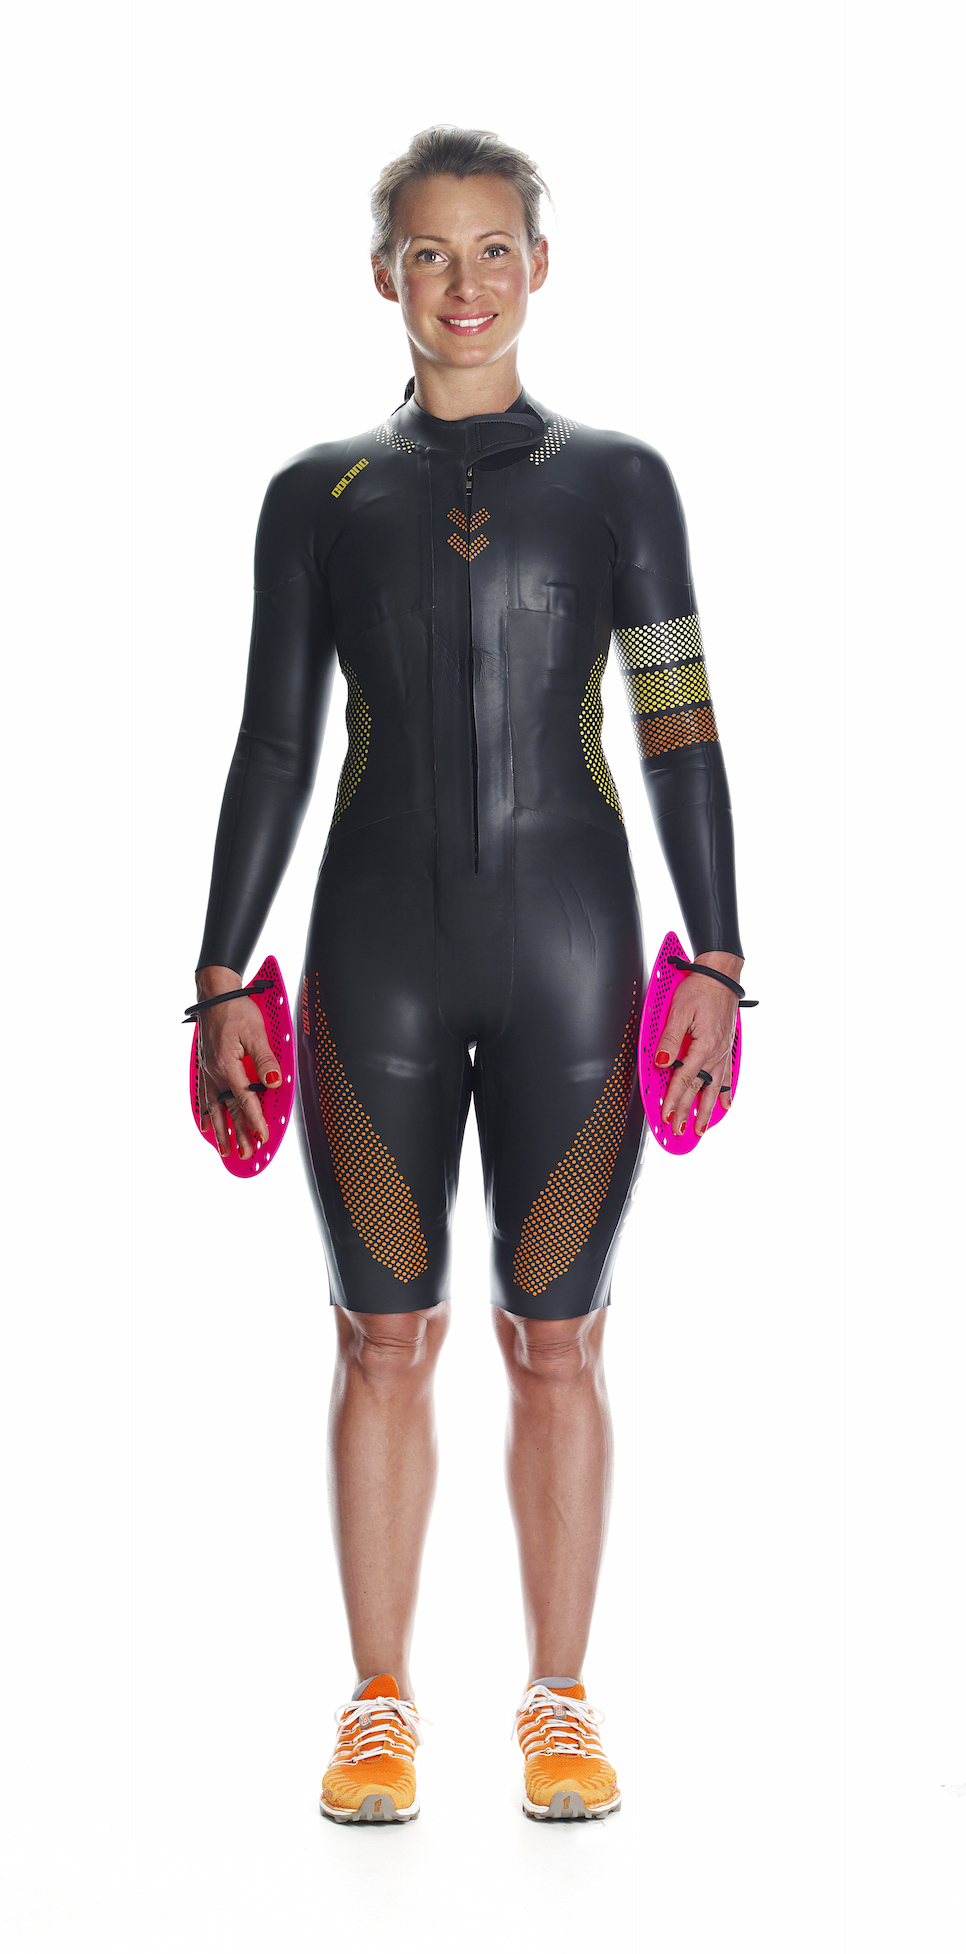 Colting_Wetsuit_2017_88360 kopia